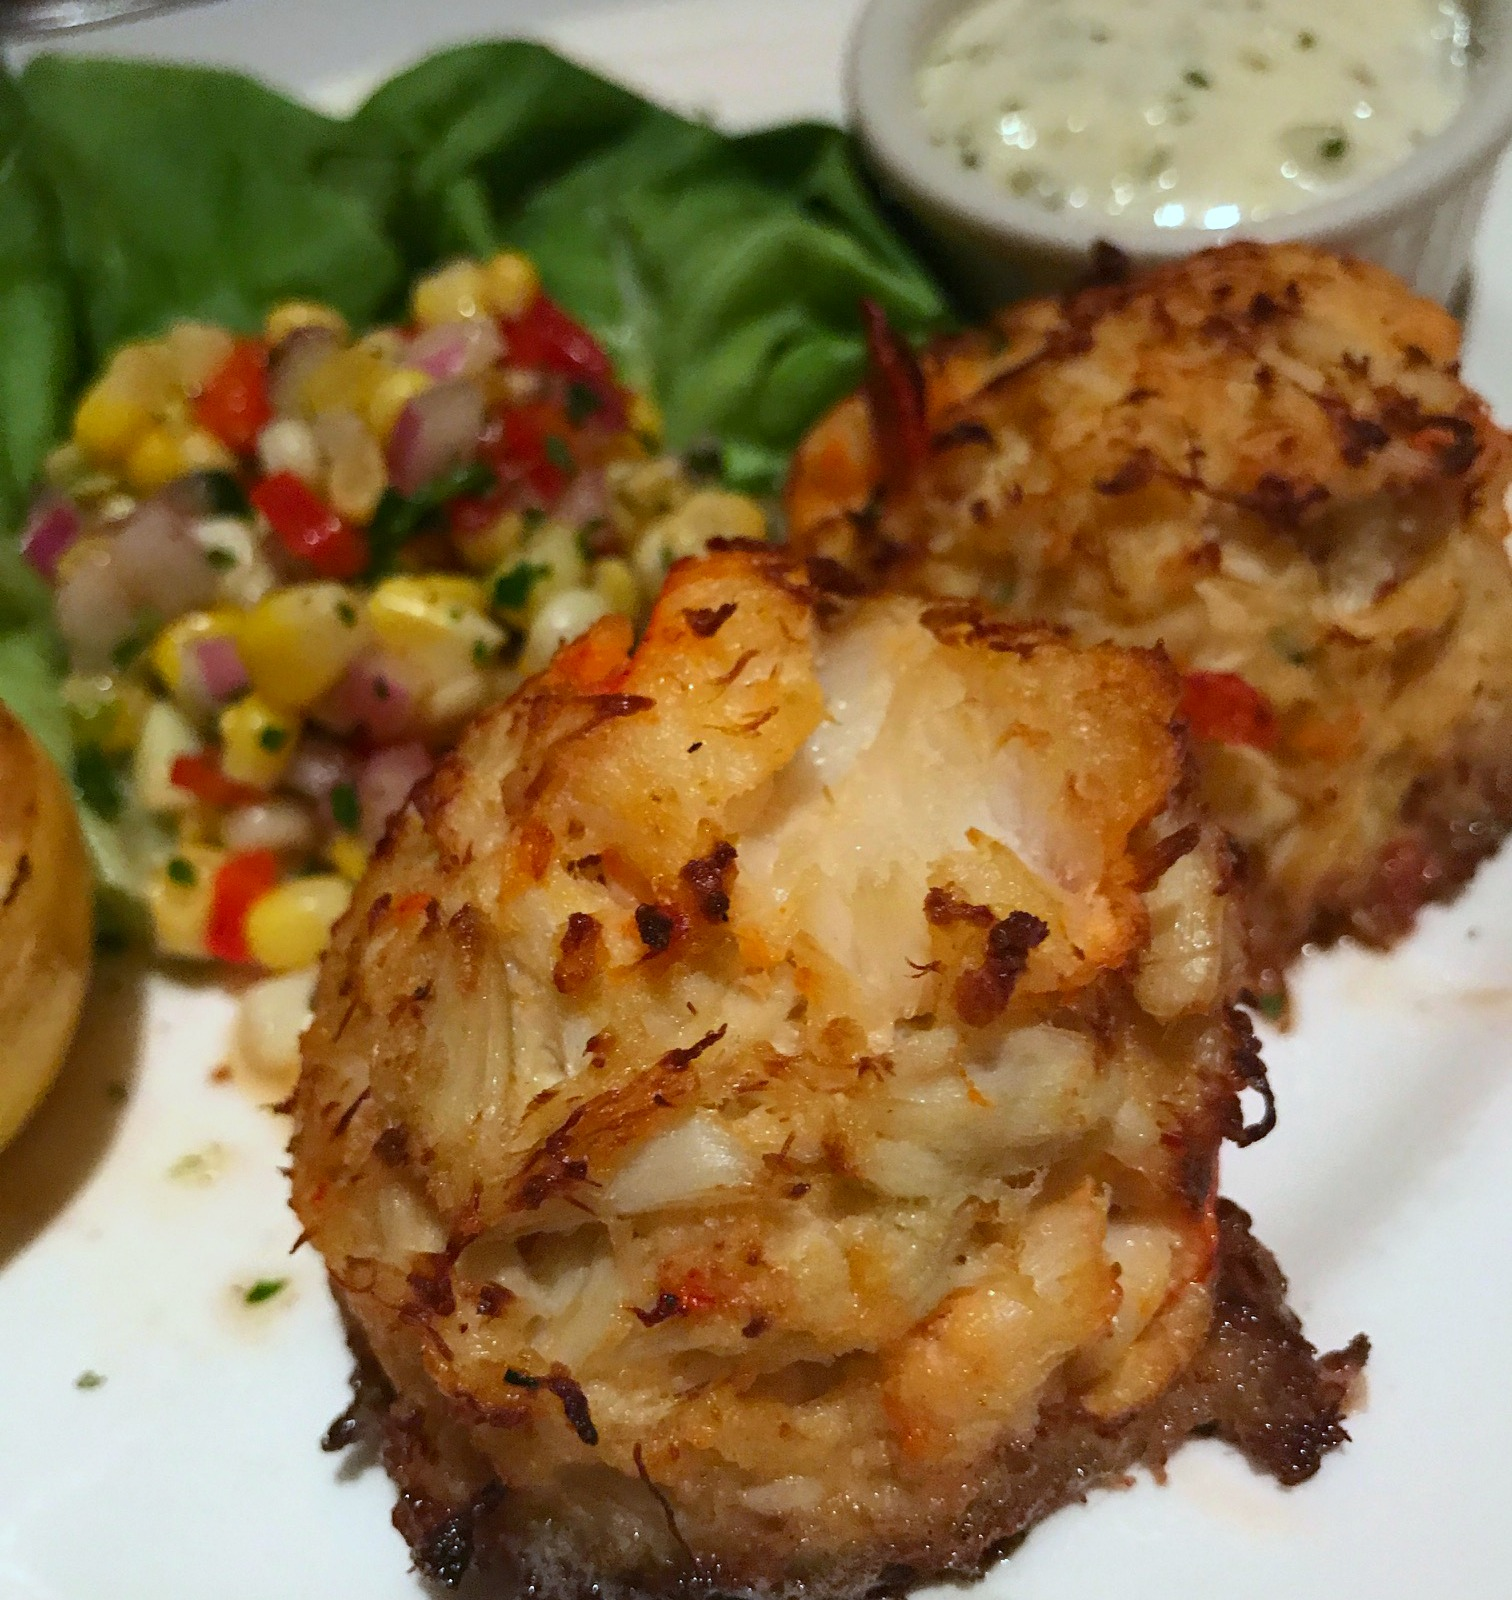 Only At Capital Grille Until 9/3